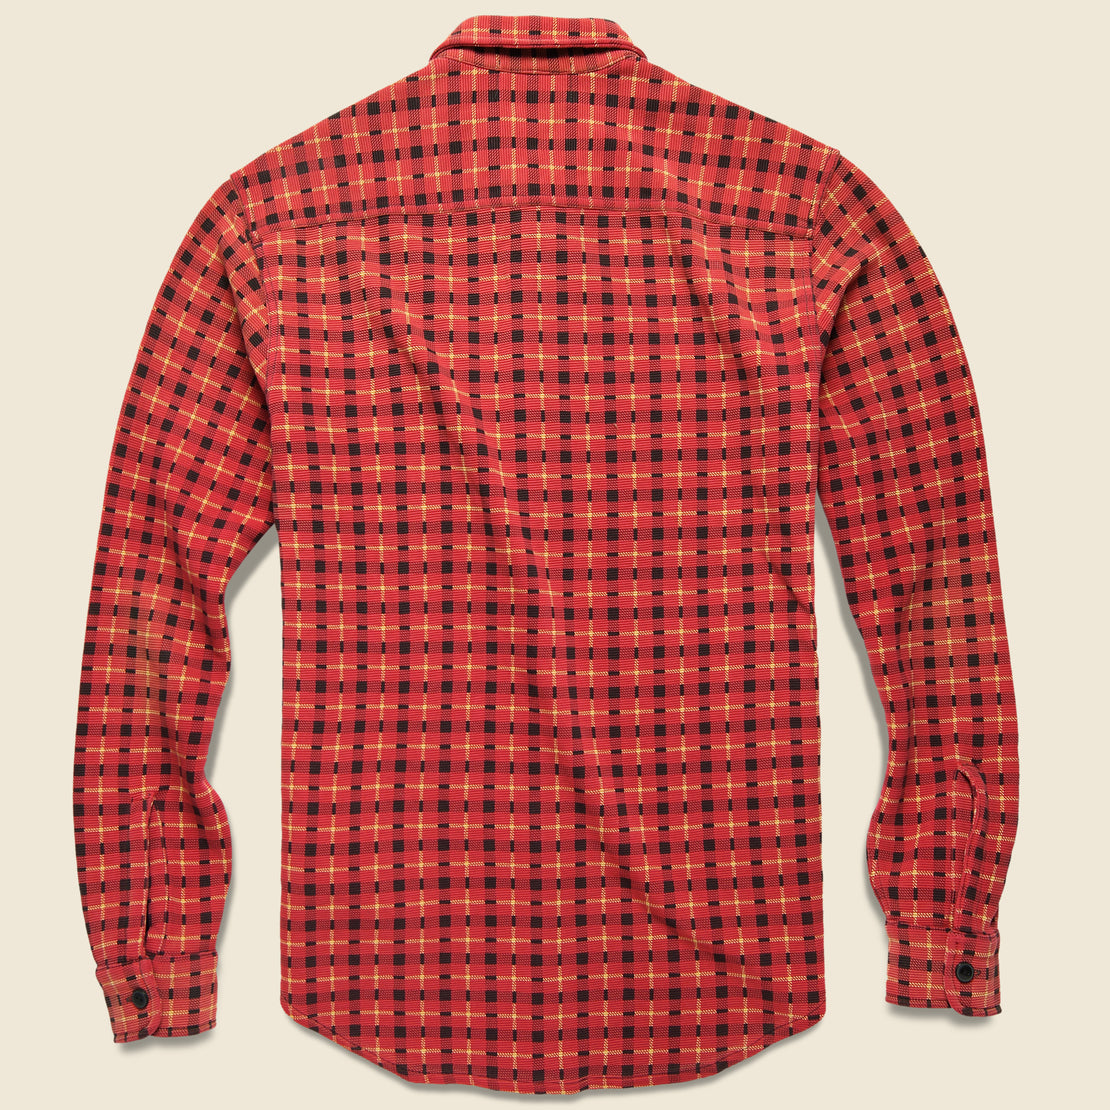 Ottoman Knit Workshirt - Red/Gold/Black Plaid